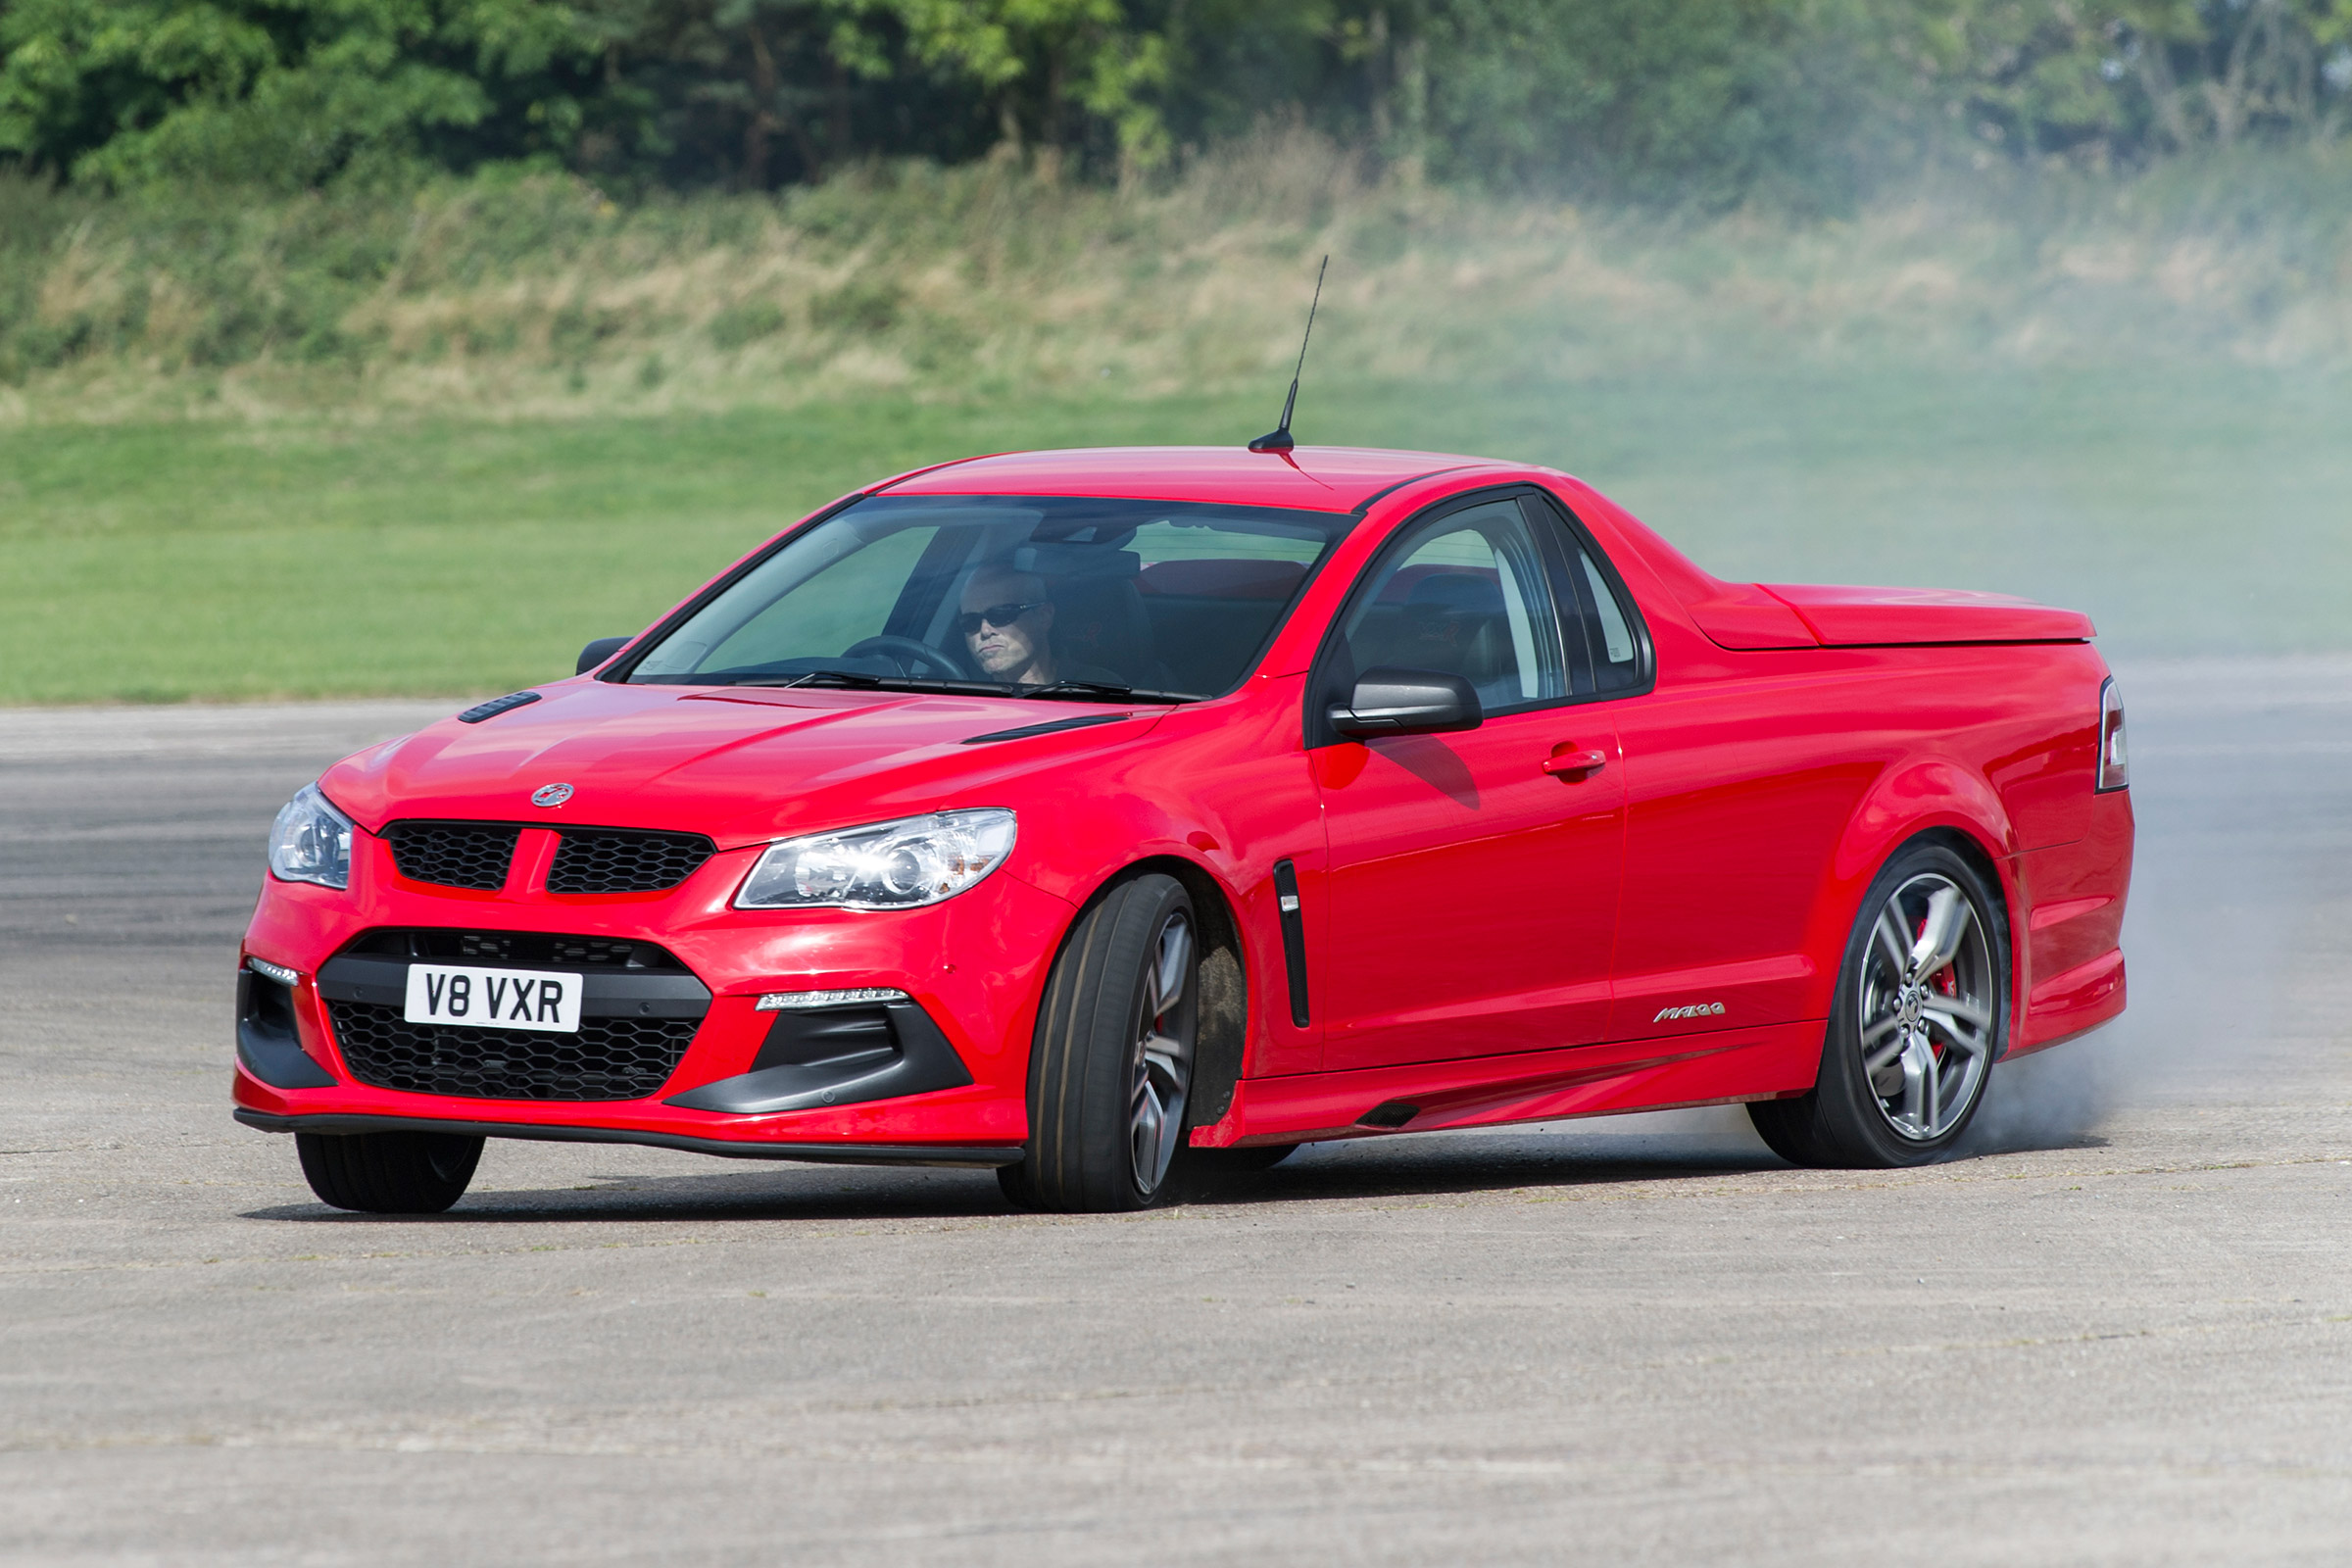 2017 Vauxhall VXR8 Maloo Pictures Gallery (26 Images)